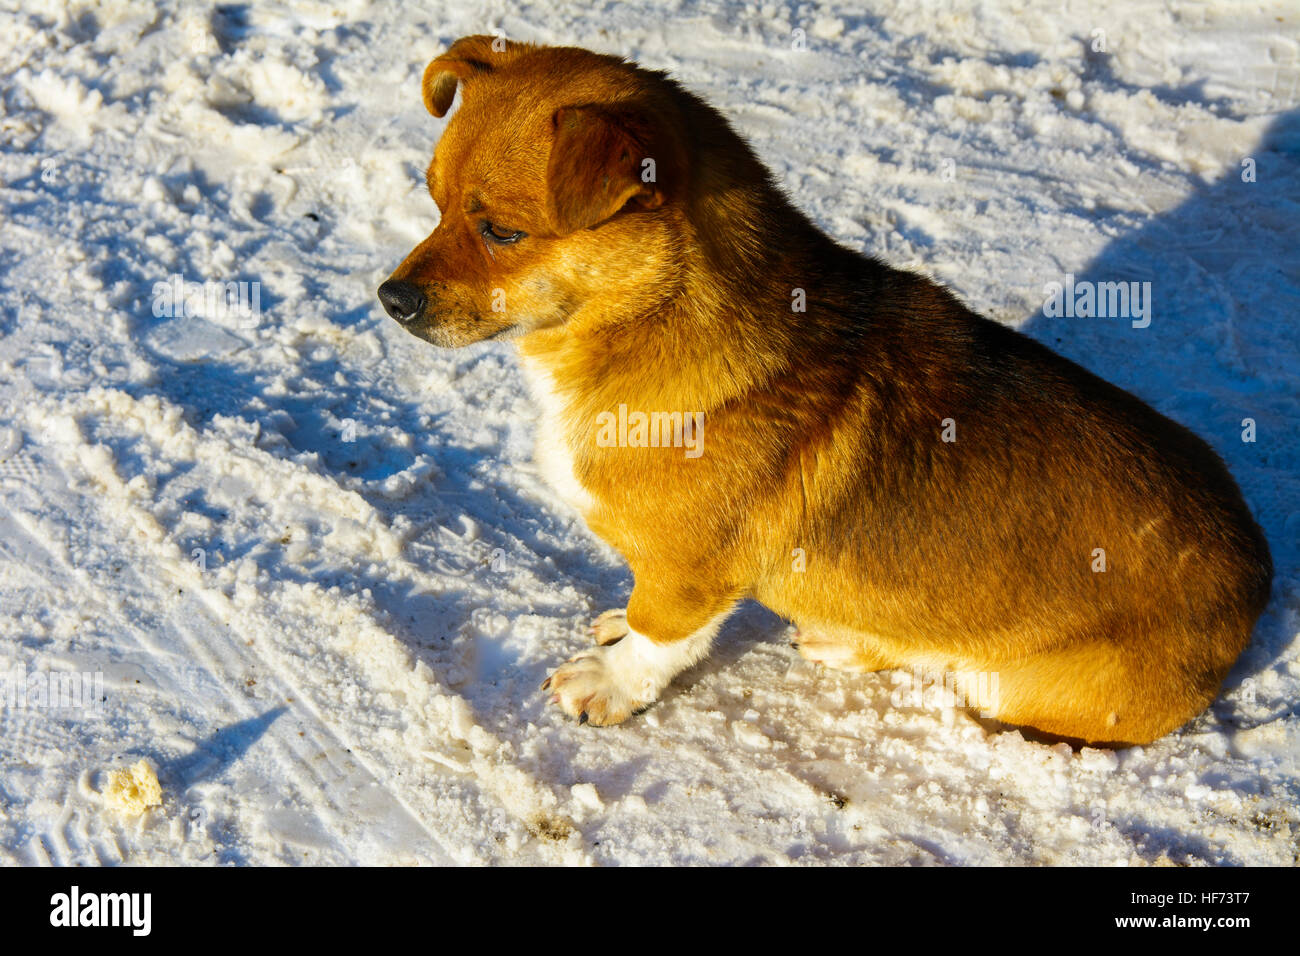 Small frozen non-pedigreed dog on snow in winter - Stock Image